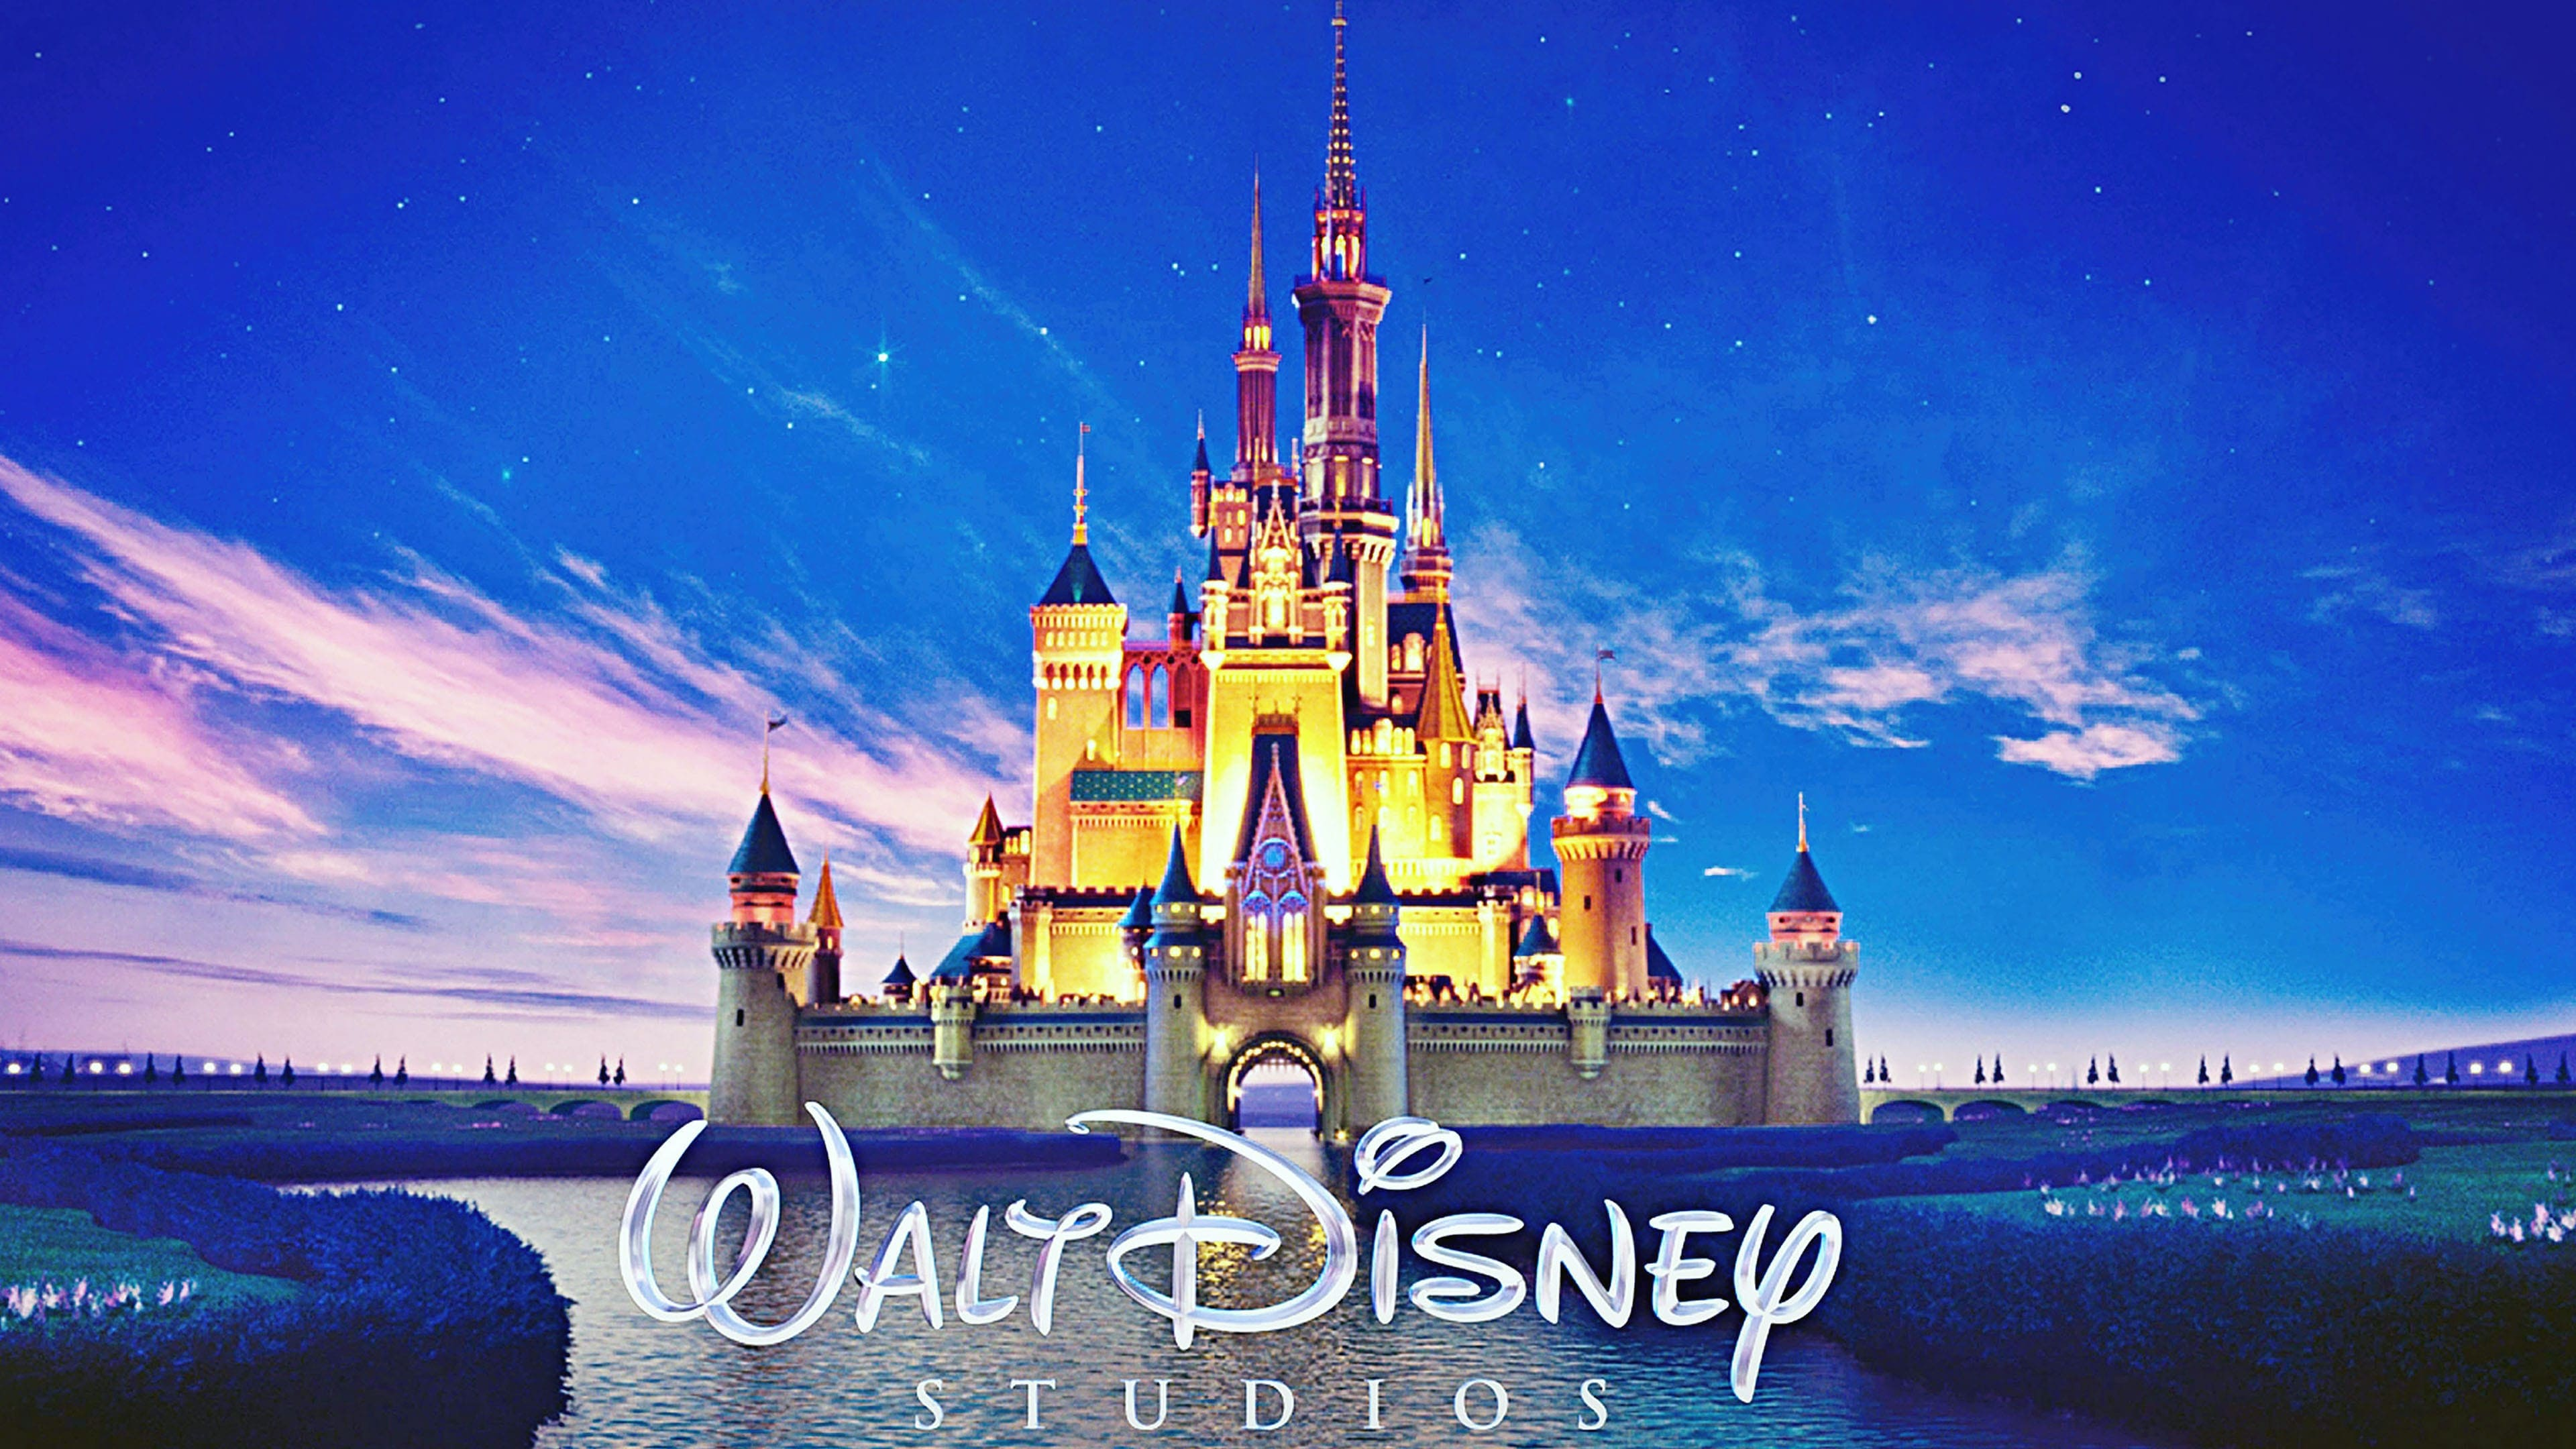 Walt Disney Pictures Logo The Most Famous Brands And Company Logos In The World